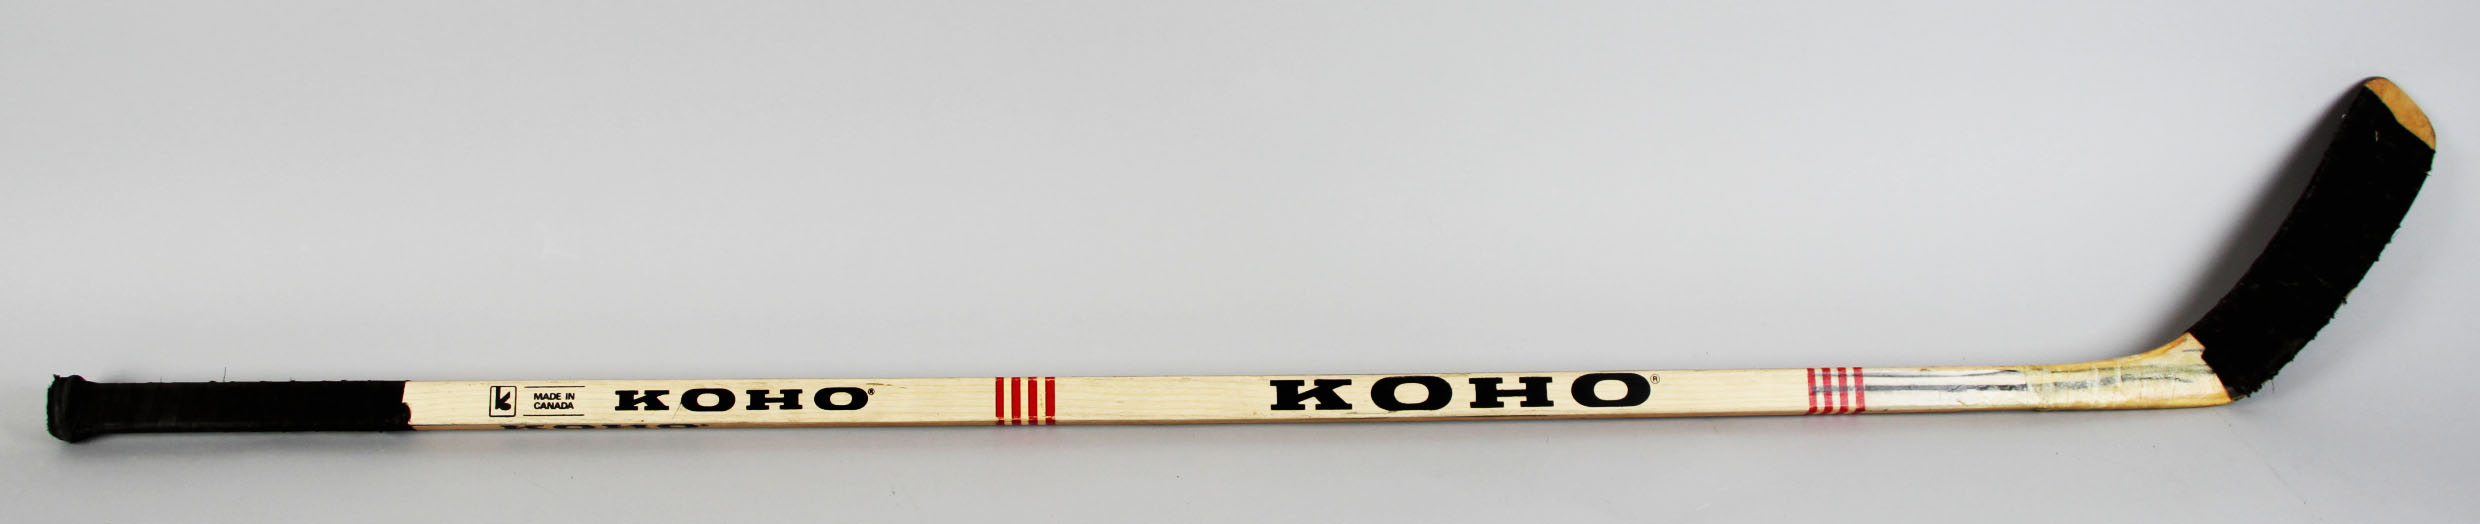 Detroit Red Wings - Reed Larson Game-Used Hockey Stick - COA